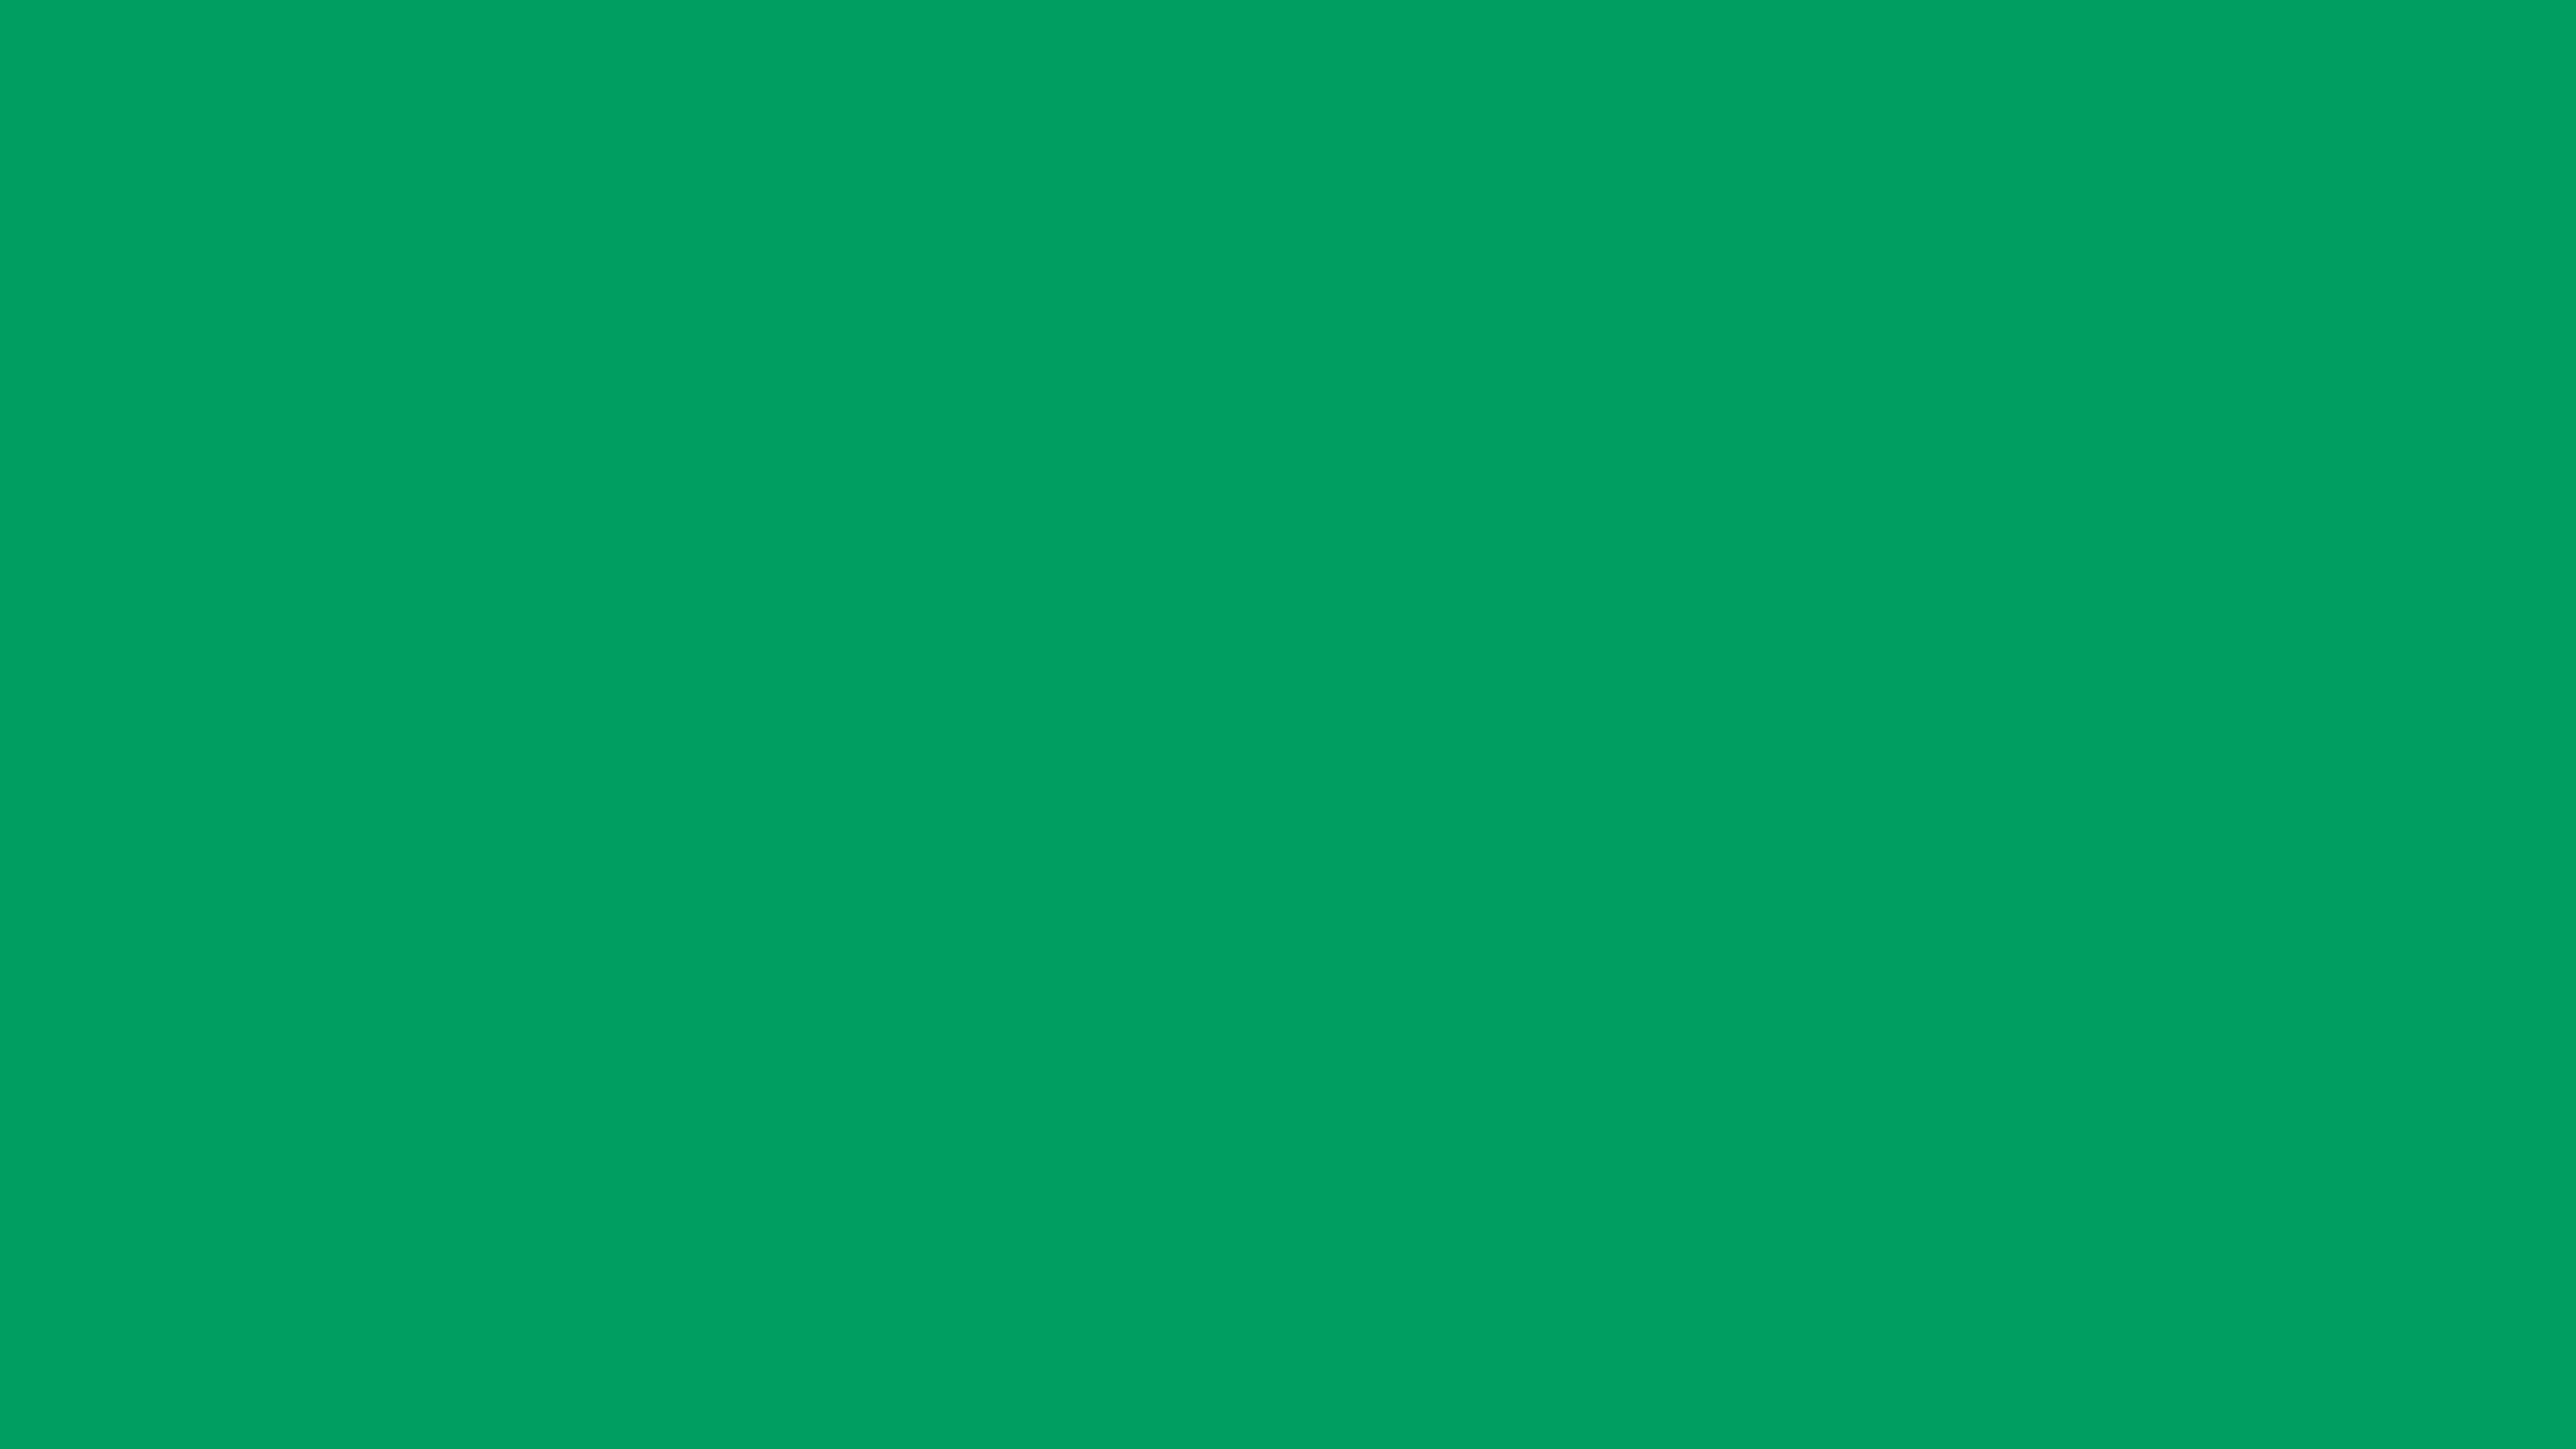 3840x2160 Shamrock Green Solid Color Background